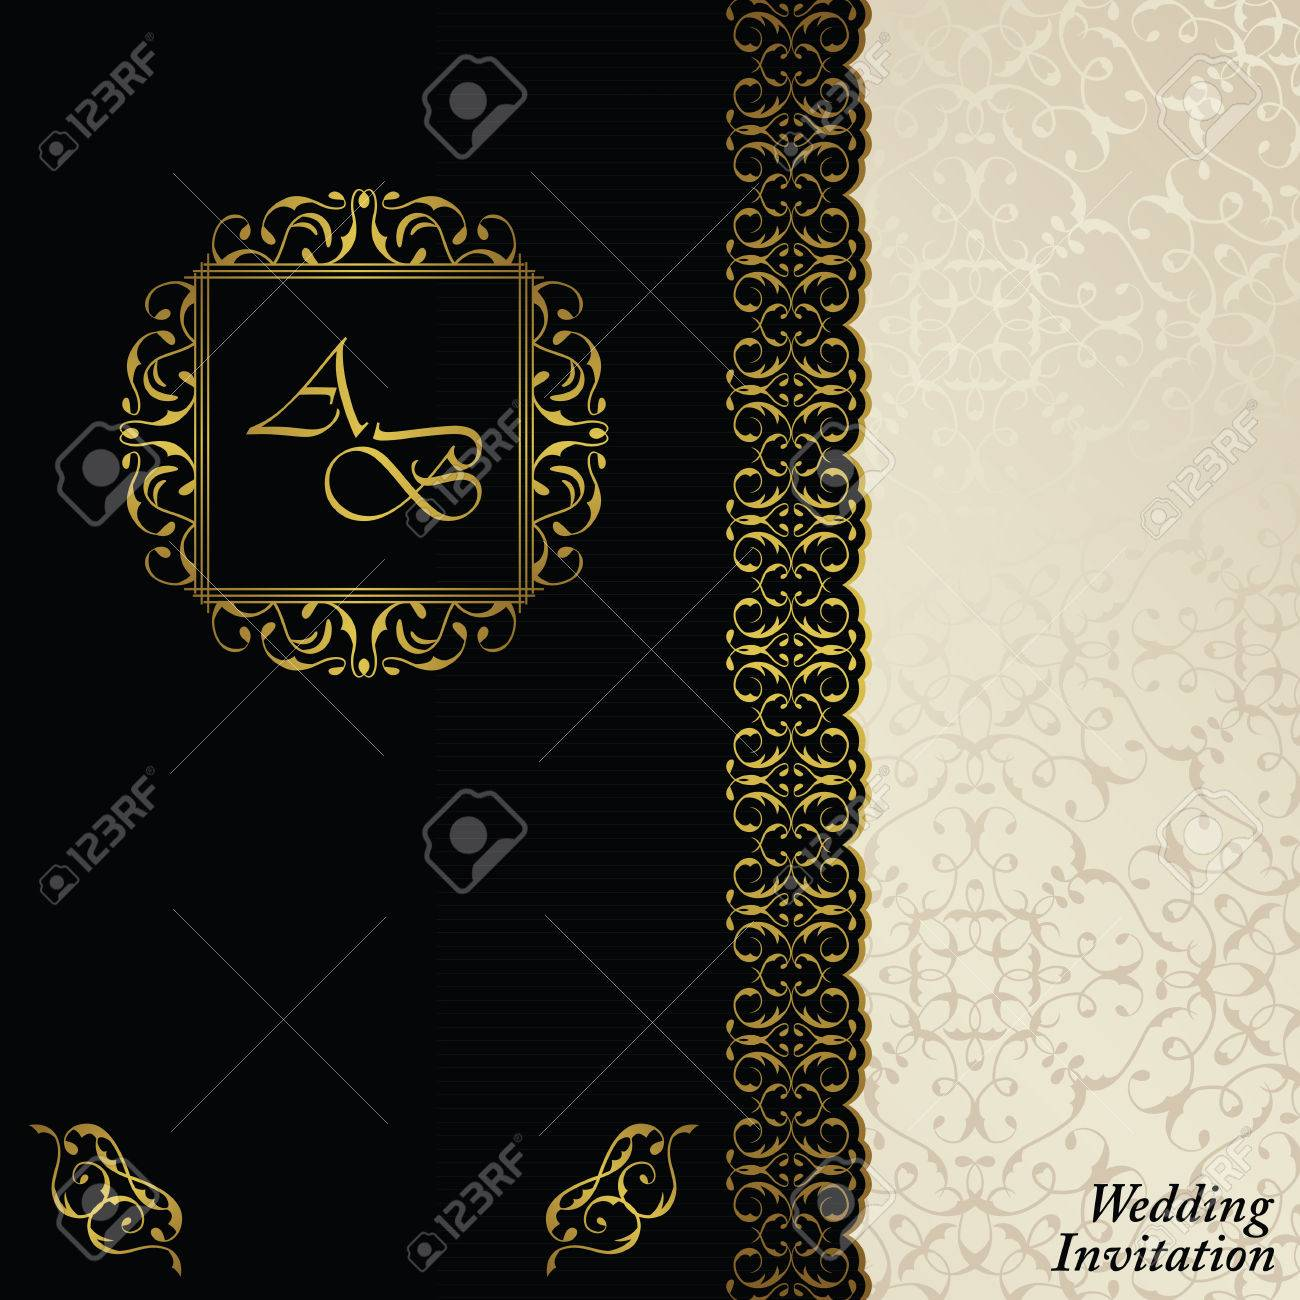 Luxury background with antique vintage frame invitation card luxury background with antique vintage frame invitation card baroque style label black stopboris Image collections